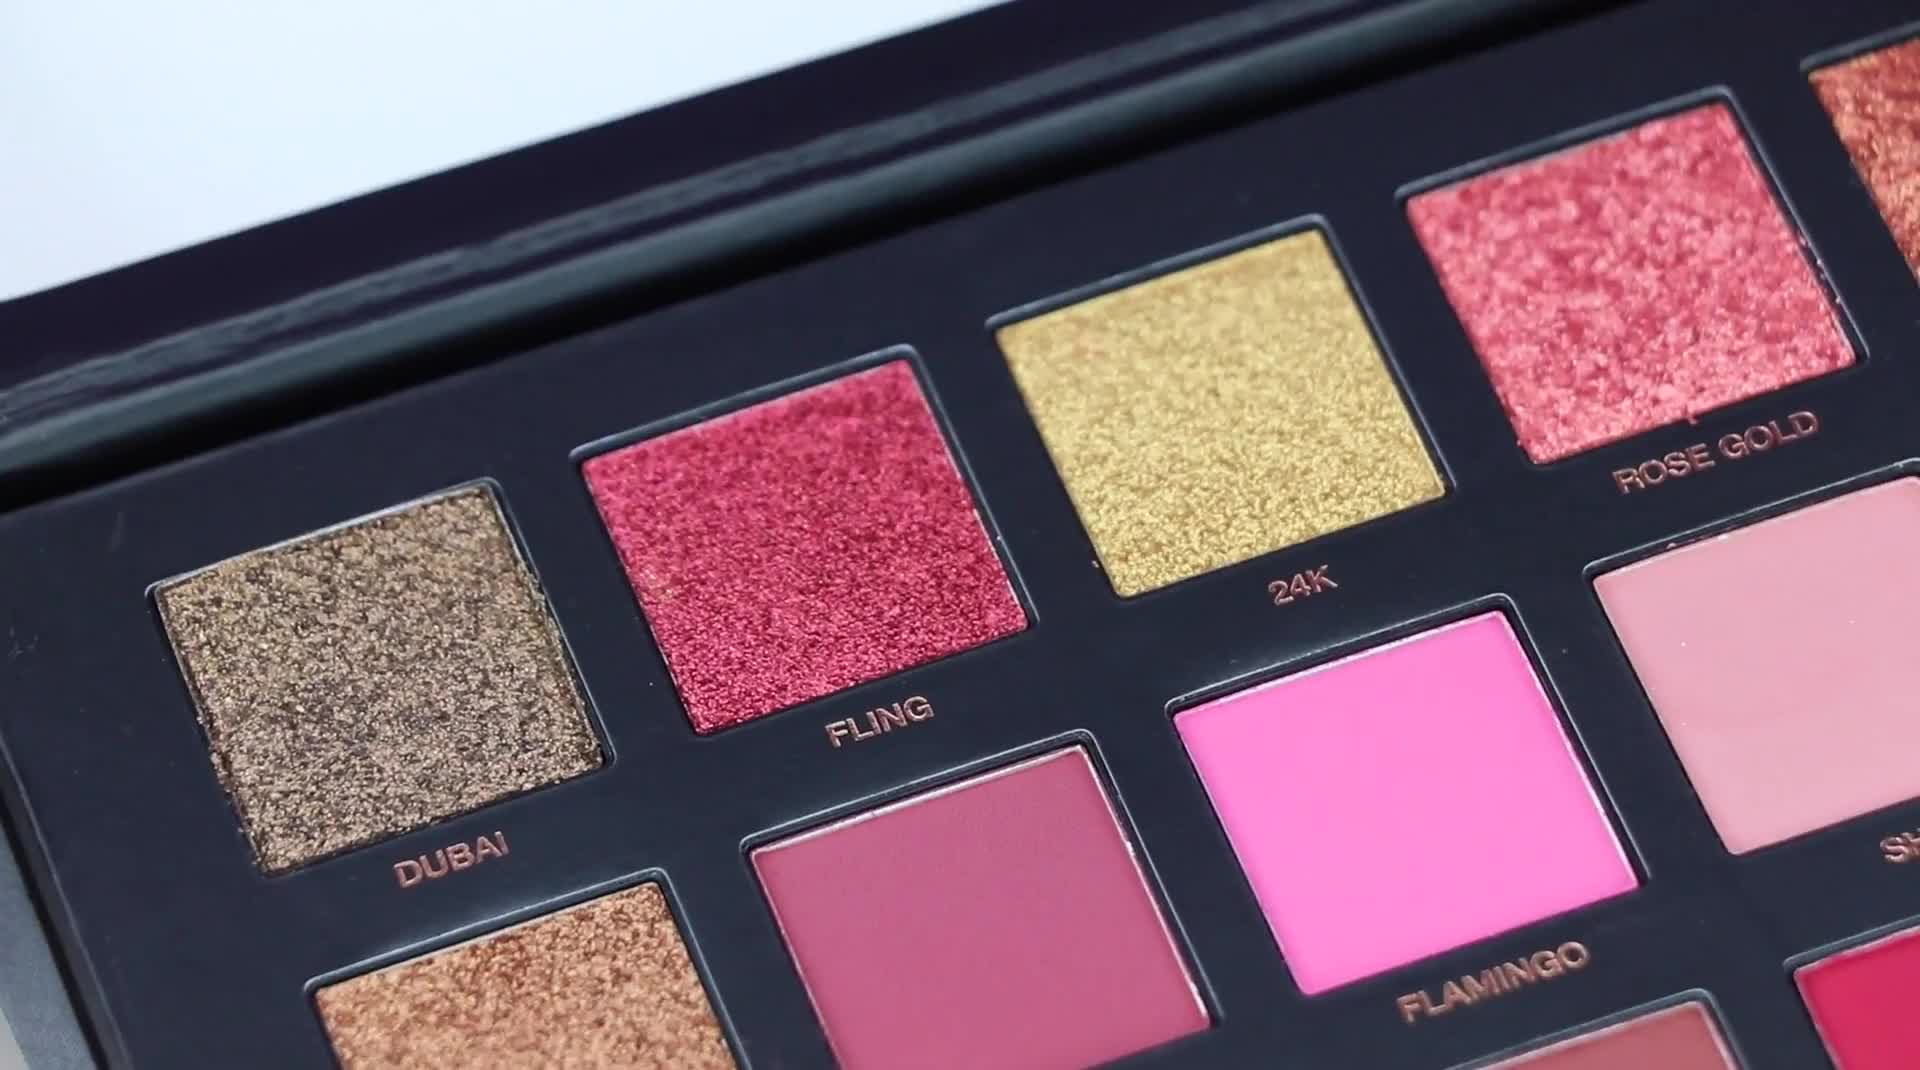 Huda Beauty Rose Gold Edition Palette | SWATCHES